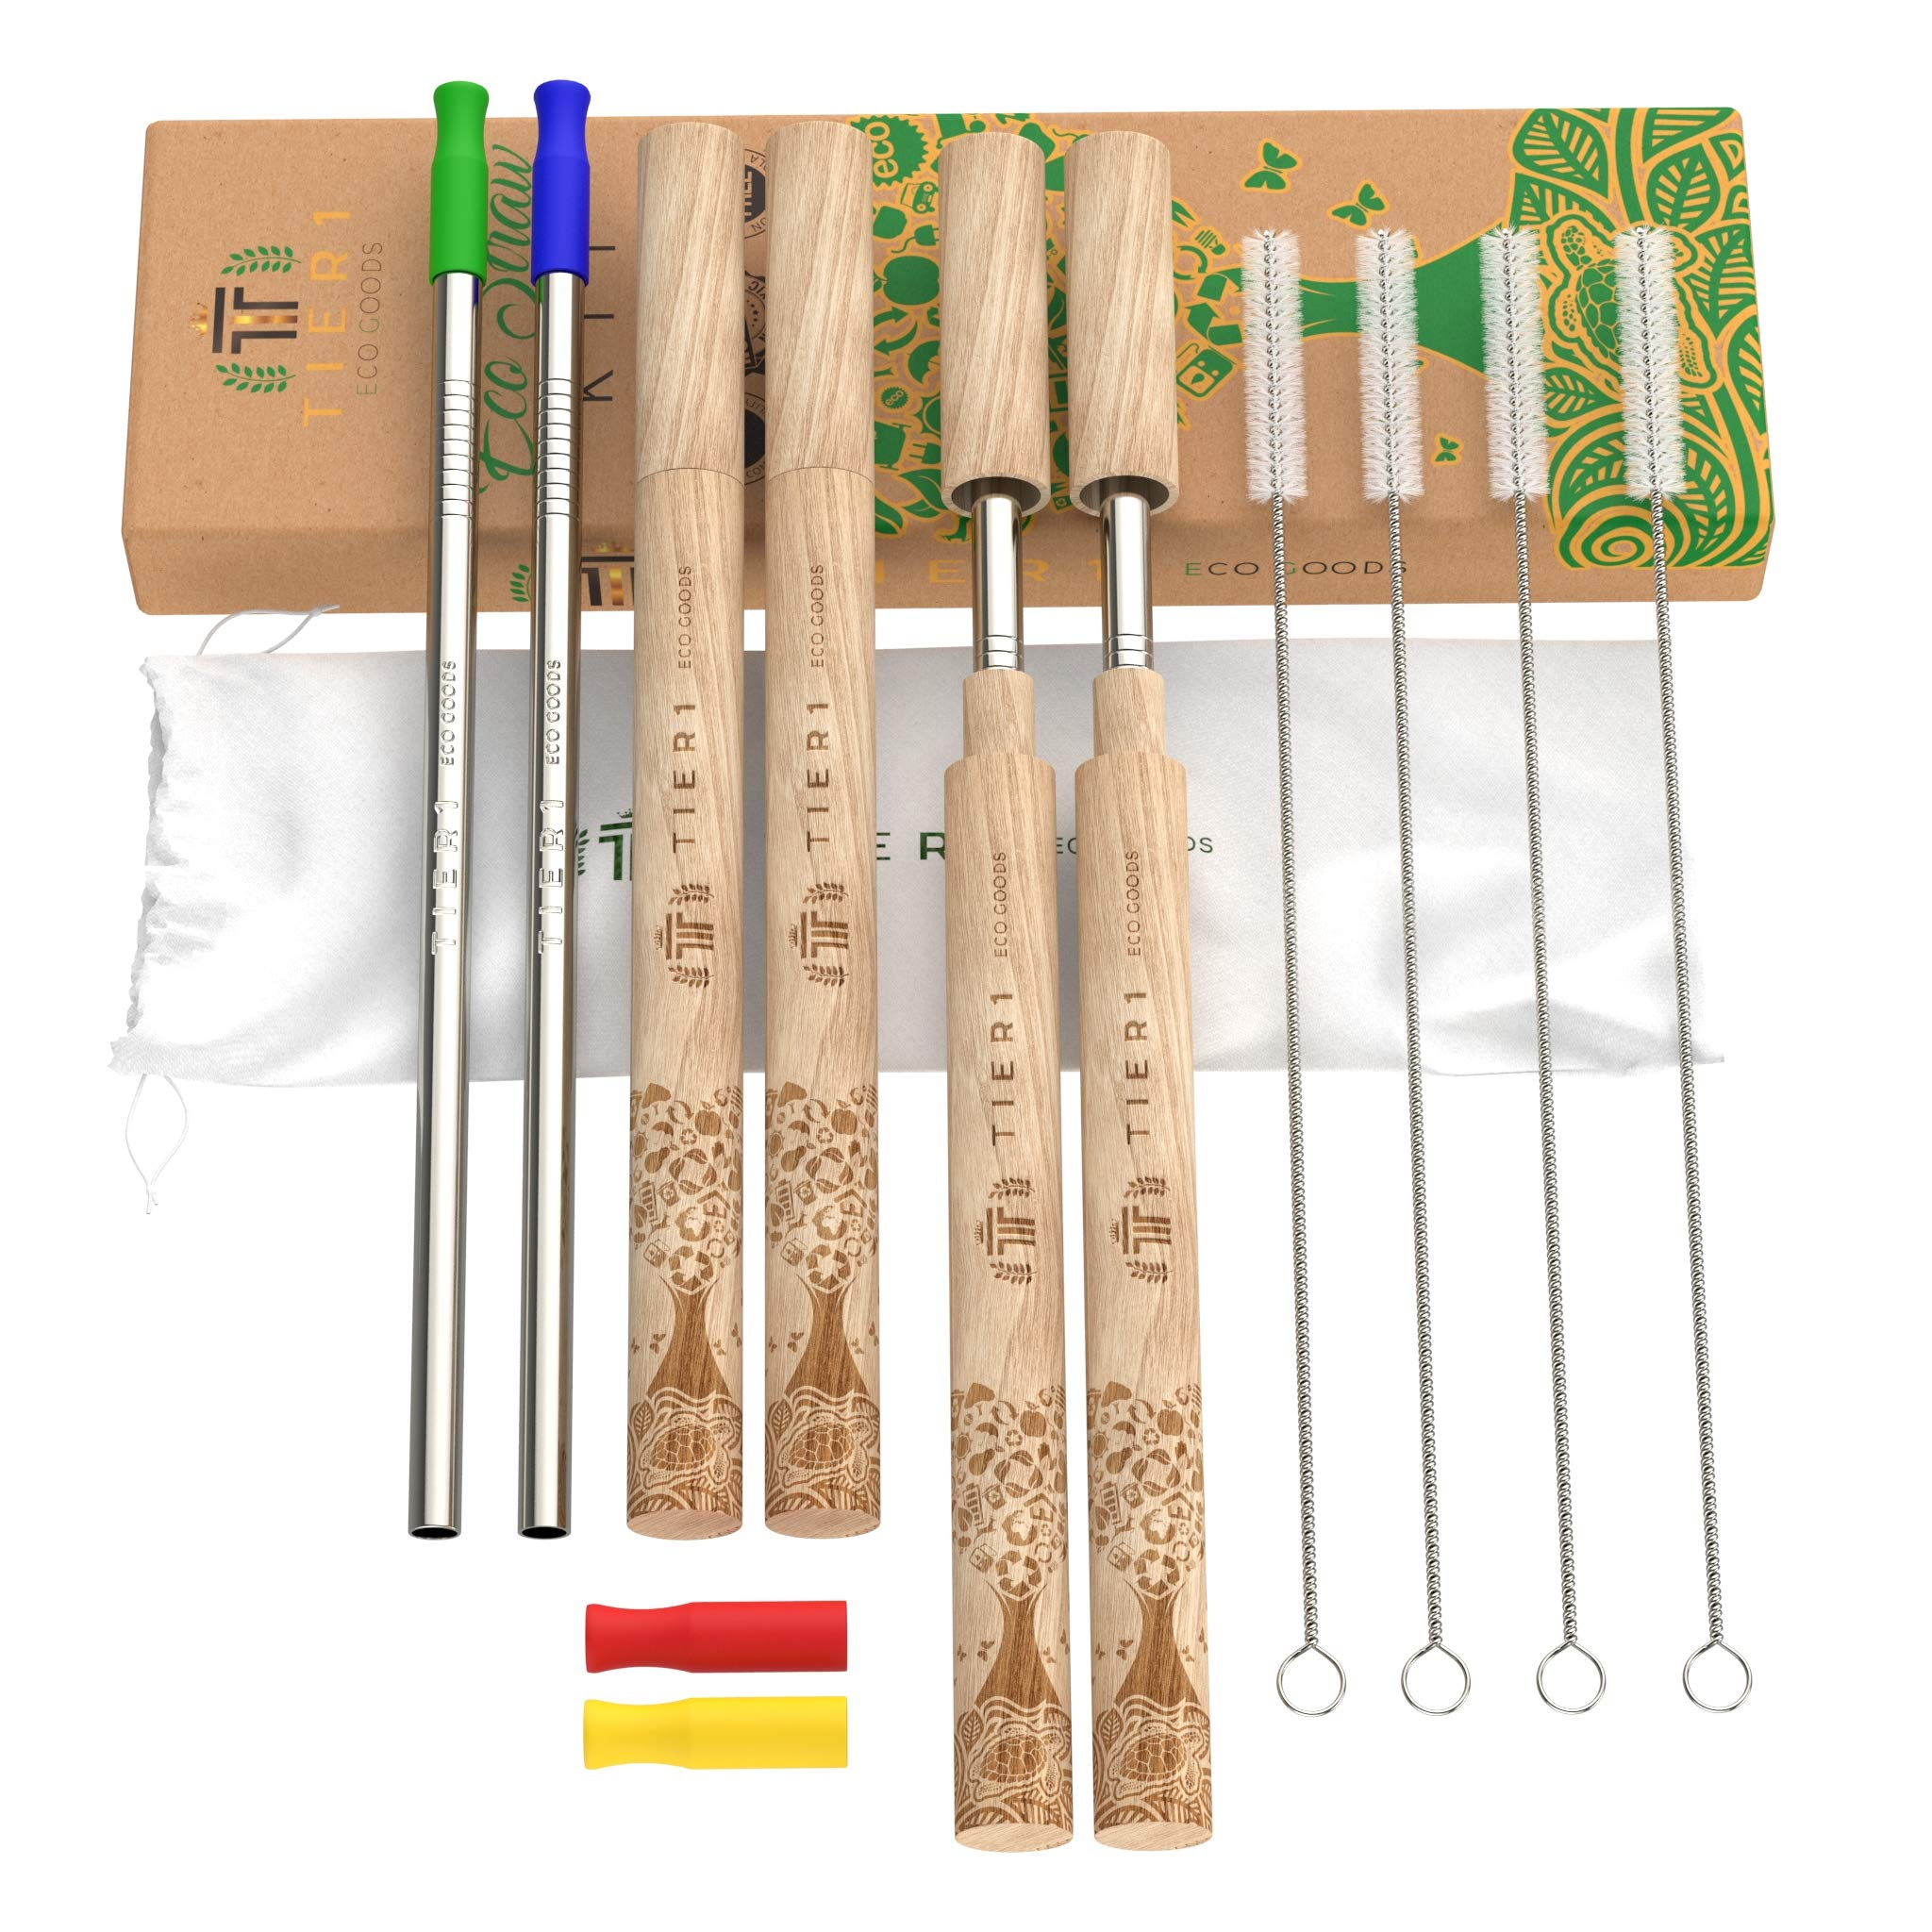 Reusable Metal Stainless Steel Straws With Case - 4 Custom Made Wooden Case sets, 4 Cleaning Brushes , 4 Silicone Tips - Portable Travel Zero Waste Straw Set - Travel Bag Included